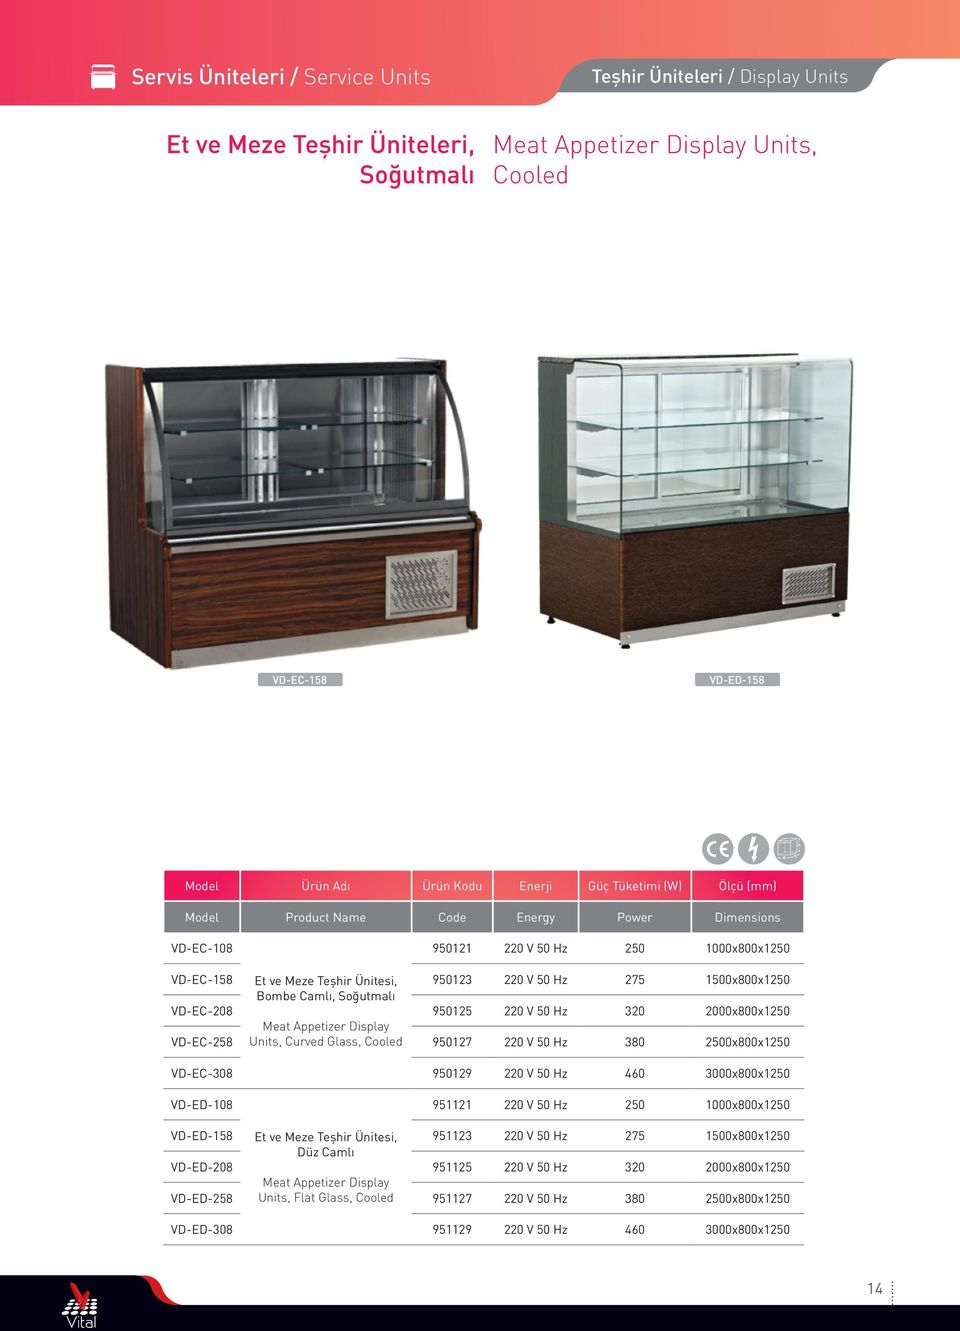 V 50 Hz 220 V 50 Hz 275 320 1500x800x1250 2000x800x1250 VD-EC-258 Meat Appetizer Display Units, Curved Glass, Cooled 950127 220 V 50 Hz 380 2500x800x1250 VD-EC-308 950129 220 V 50 Hz 460